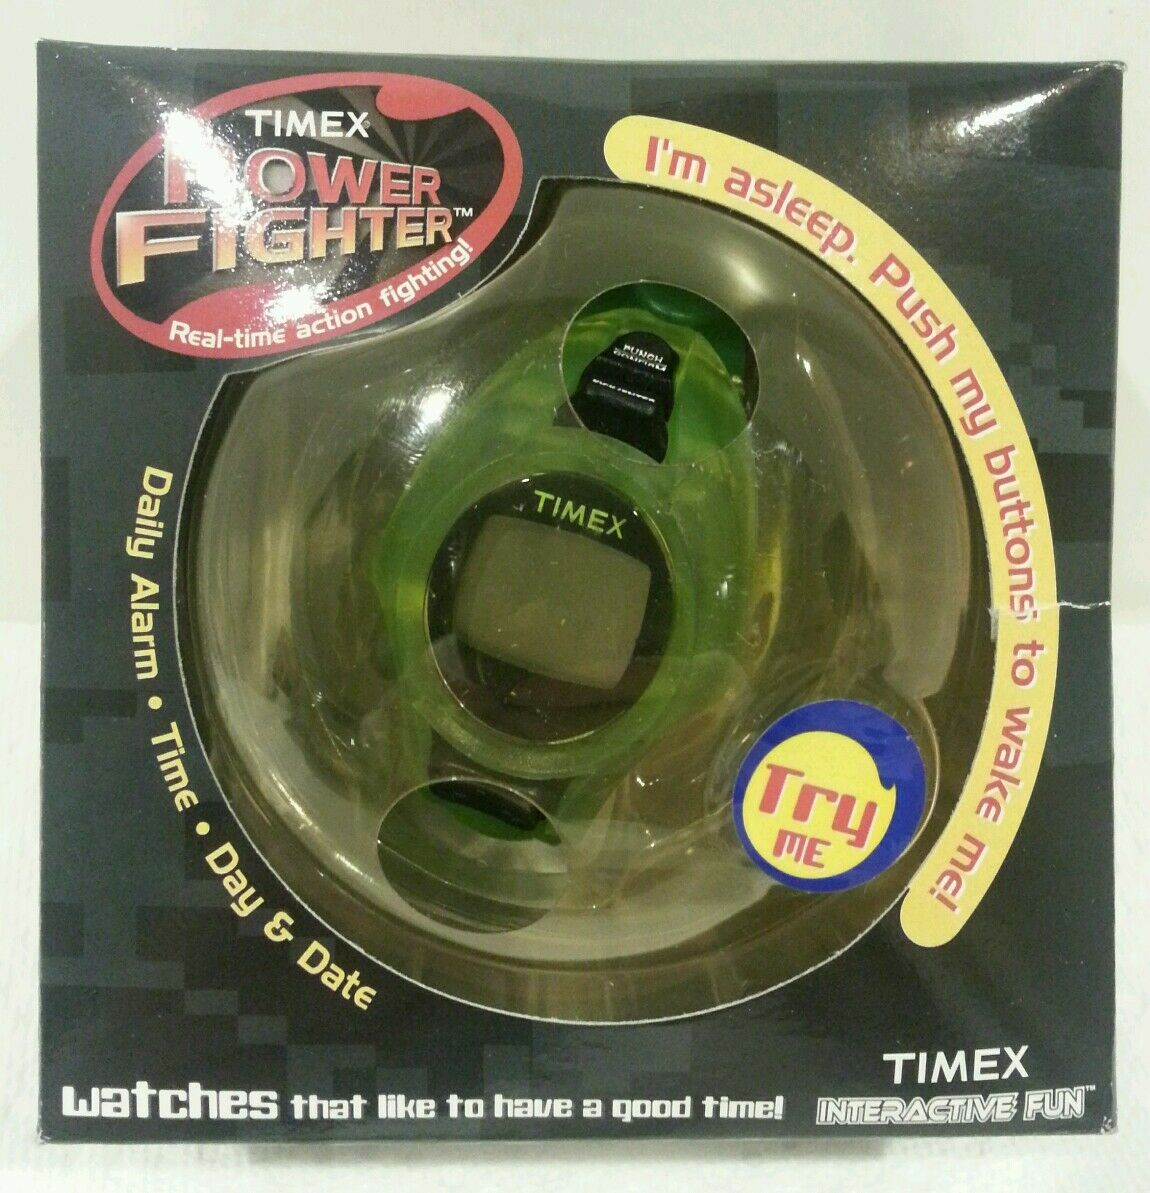 NEW SEALED Timex Power Fighter interactive watch - Collectors Dream -ULTRA RARE